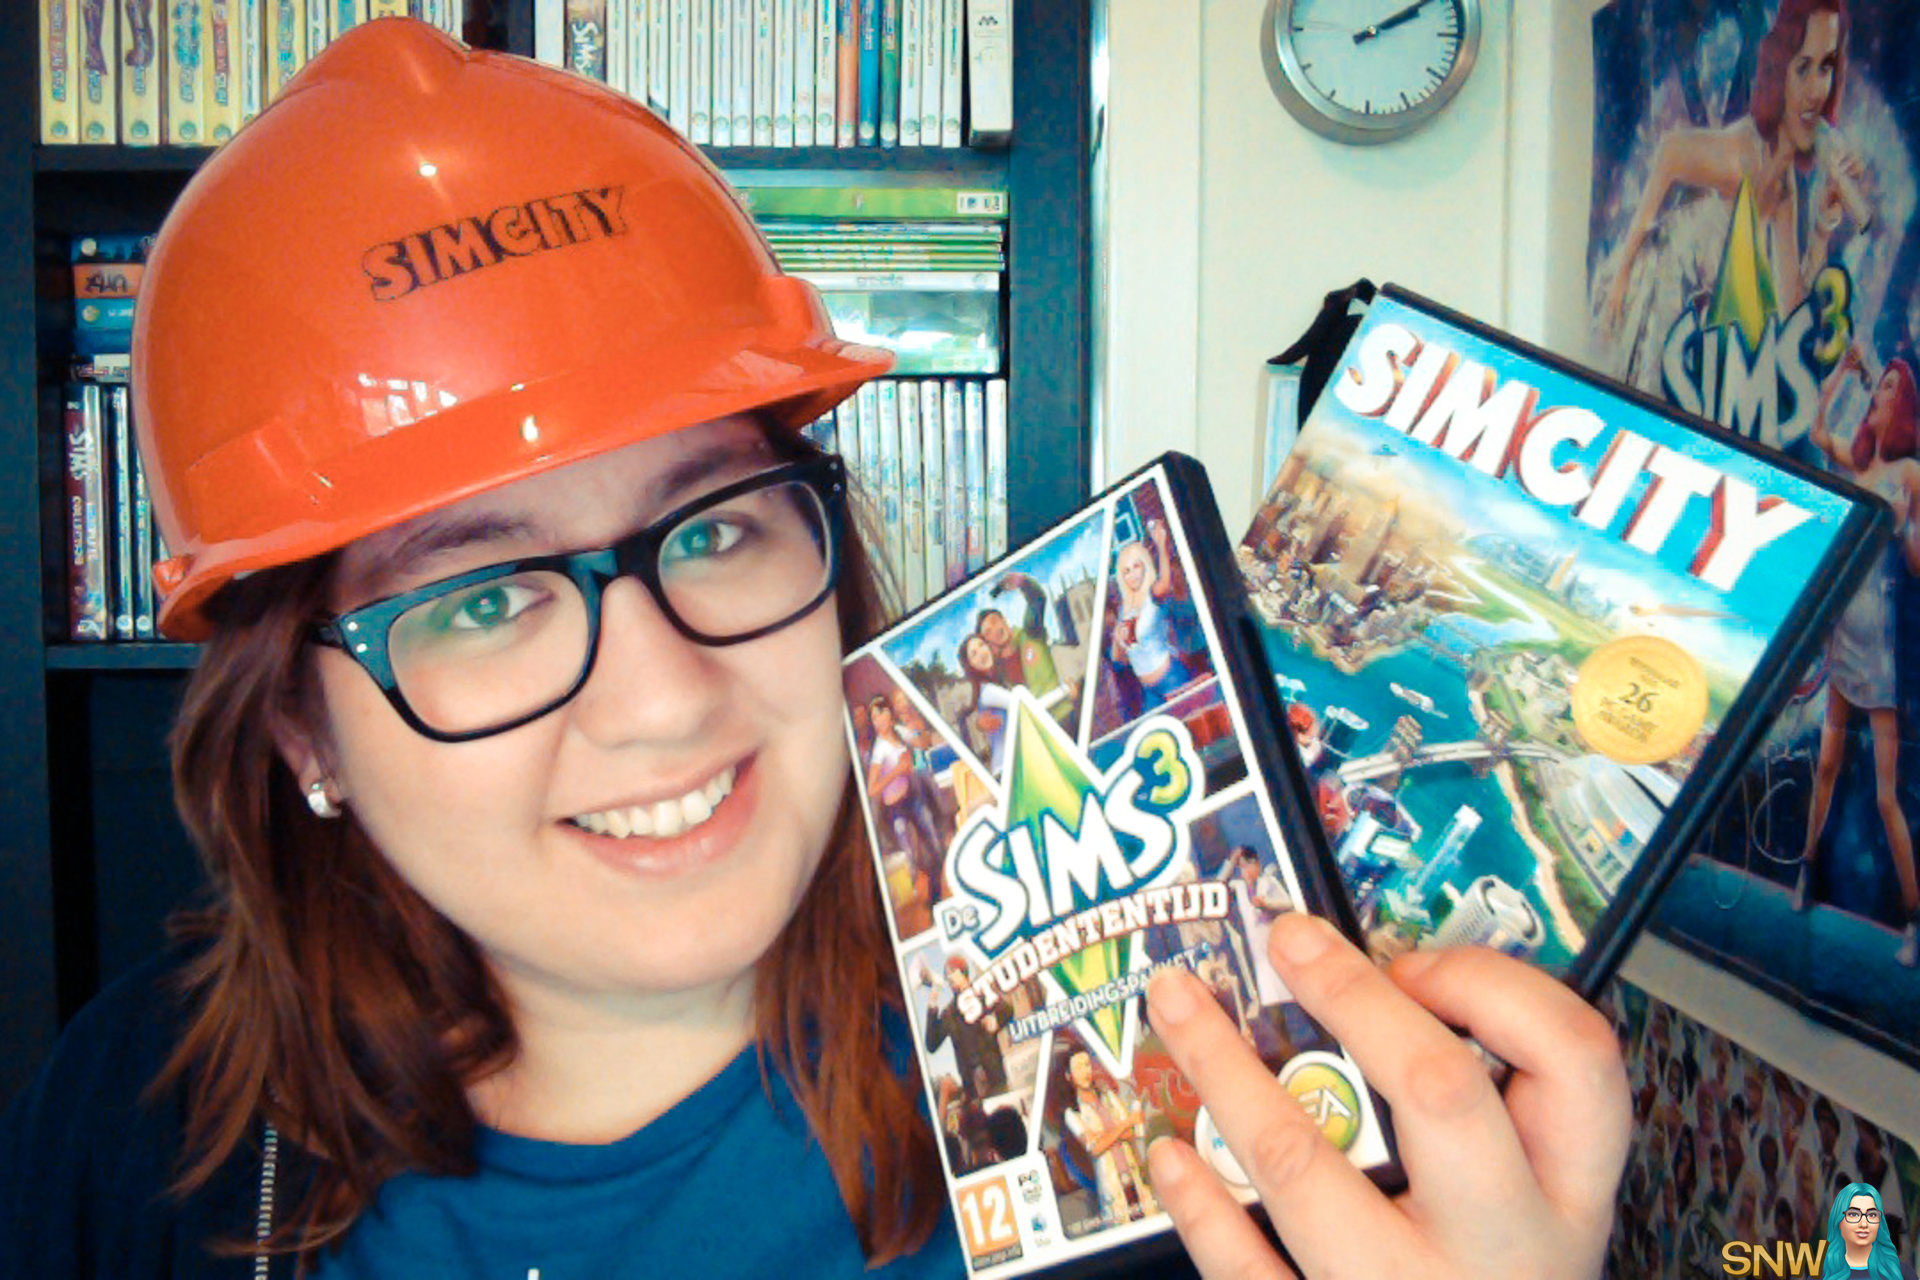 Rosie has SimCity and The Sims 3 University Life!